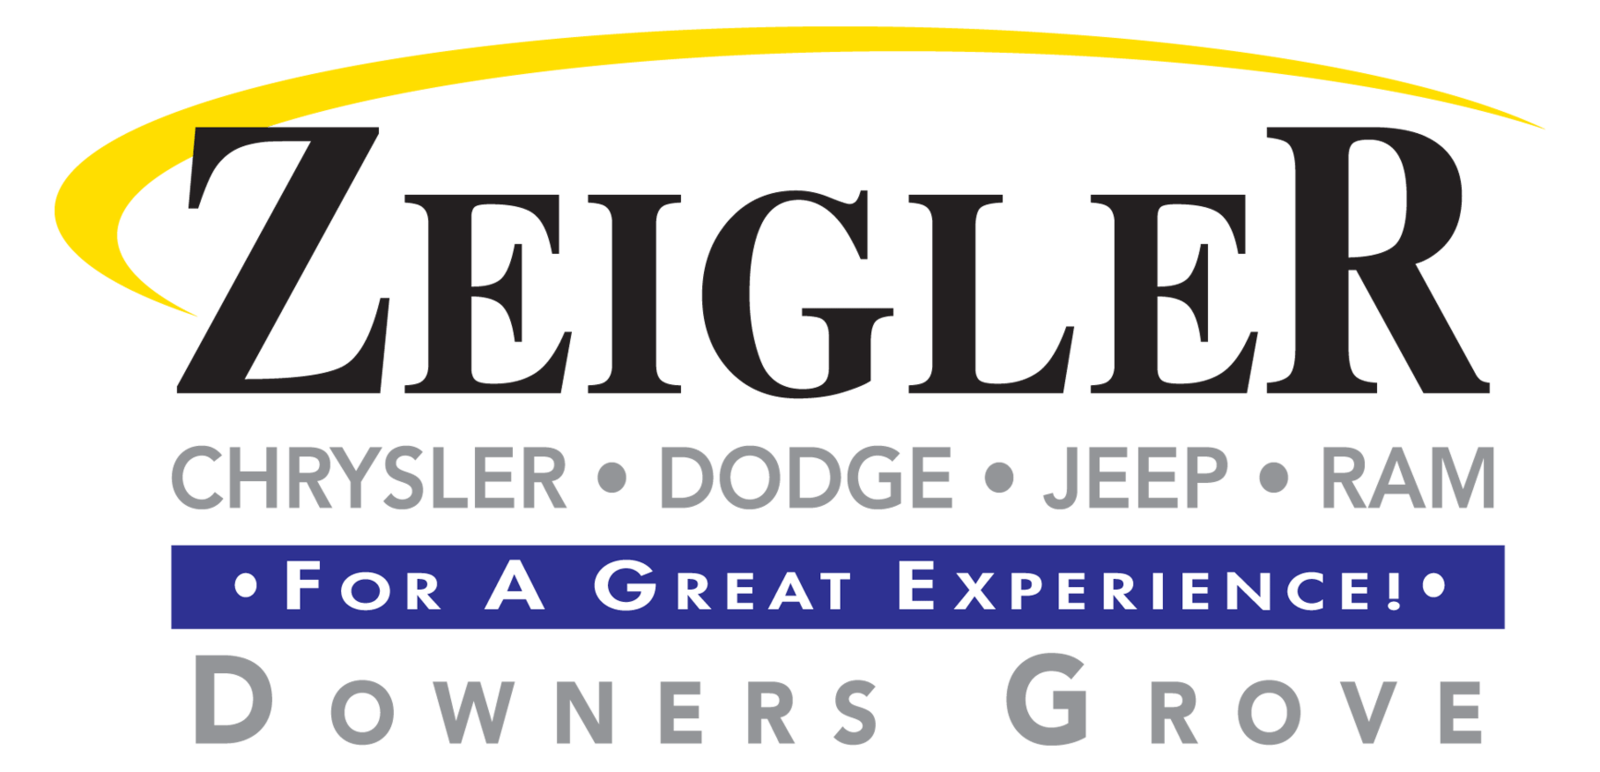 zeigler chrysler dodge jeep ram of downers grove downers grove il read consumer reviews. Black Bedroom Furniture Sets. Home Design Ideas